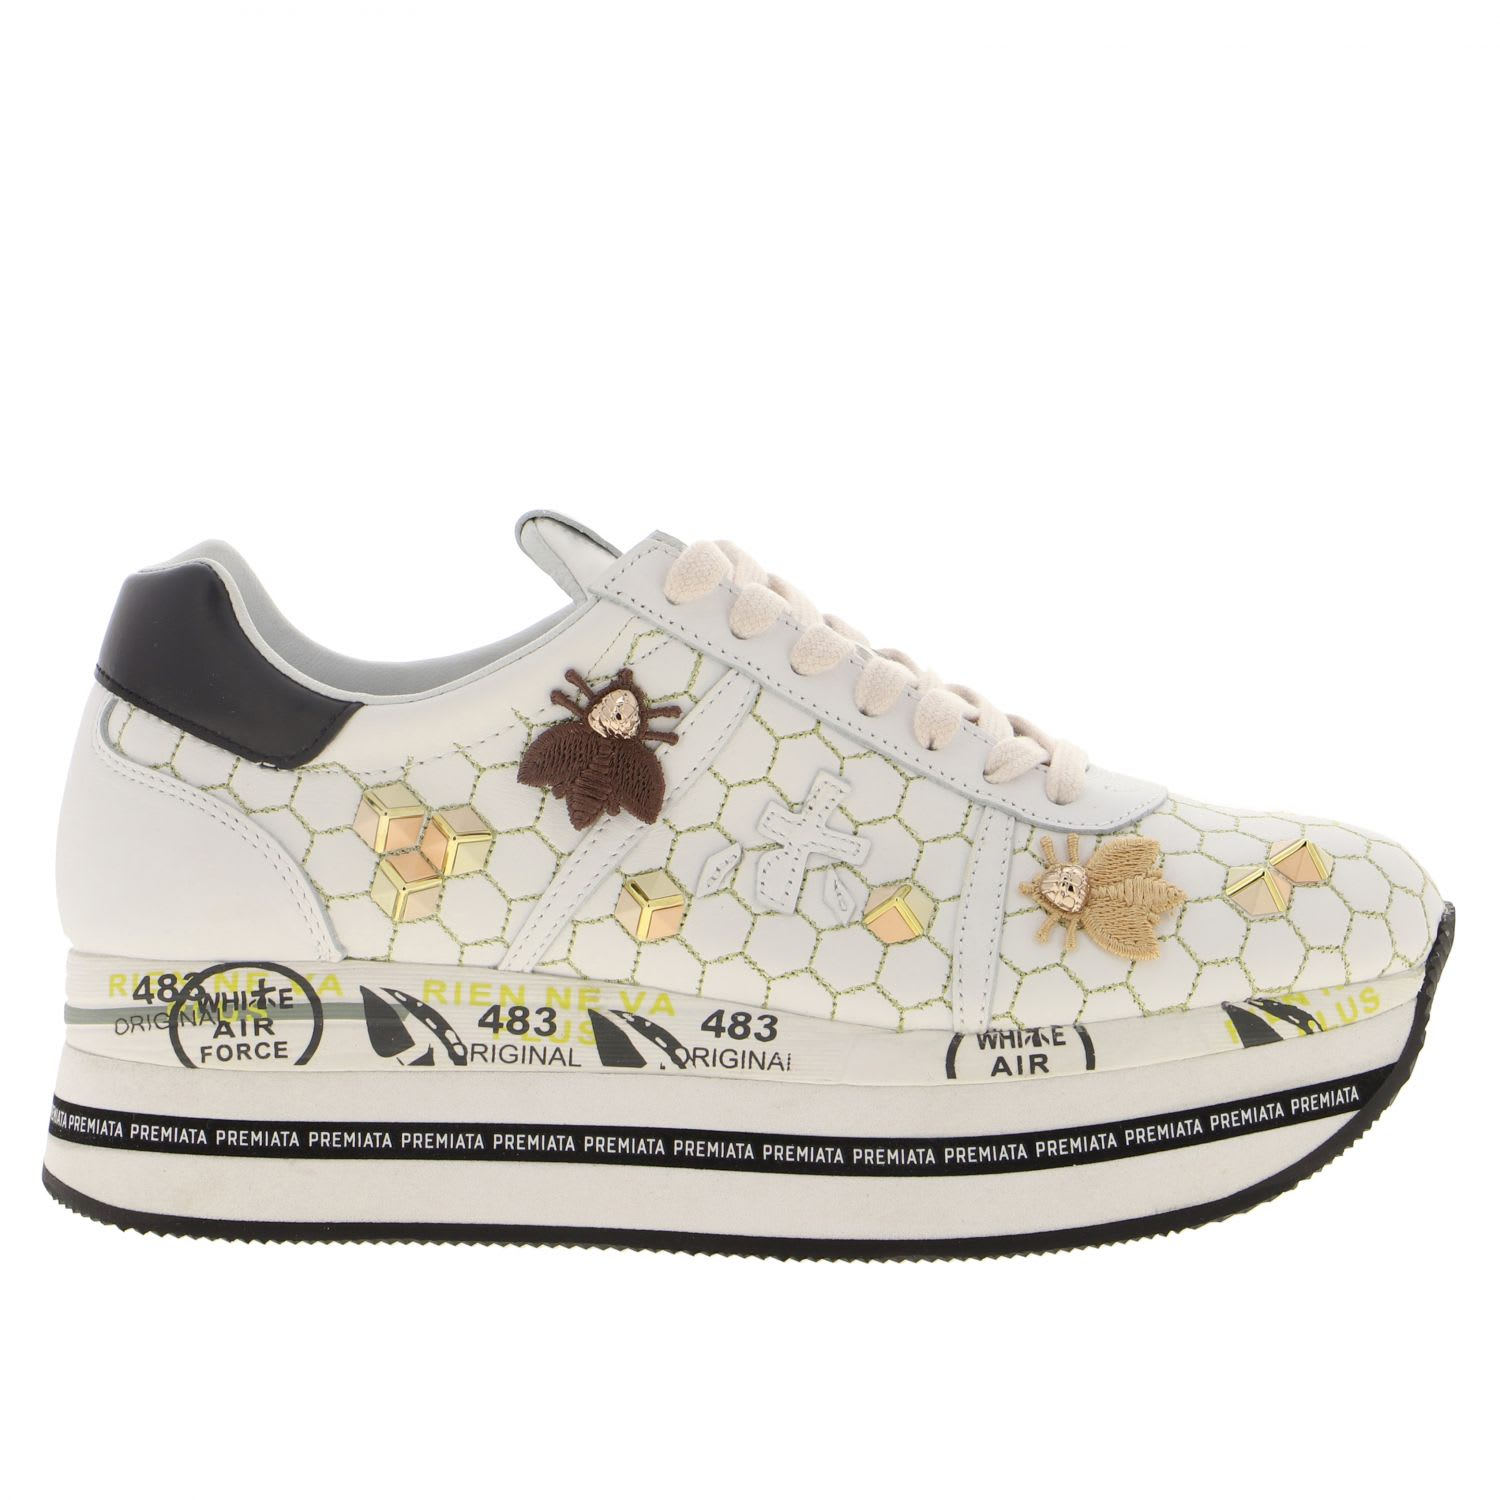 Premiata Platforms SNEAKERS IN LEATHER WITH APPLICATIONS AND EMBROIDERY